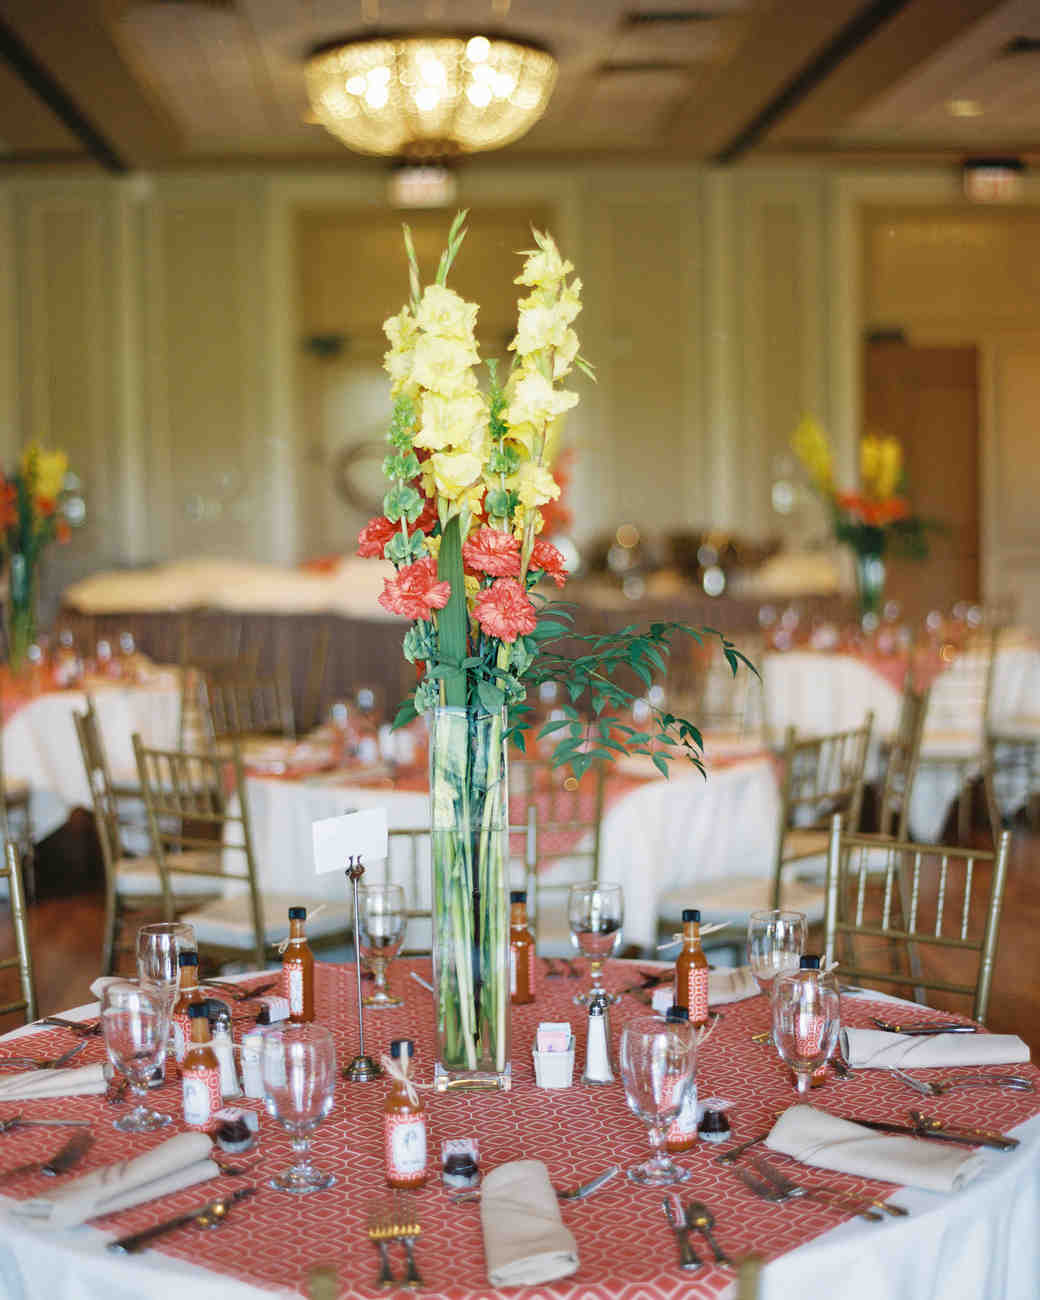 courtney and chris u2019s country club rehearsal dinner in nashville